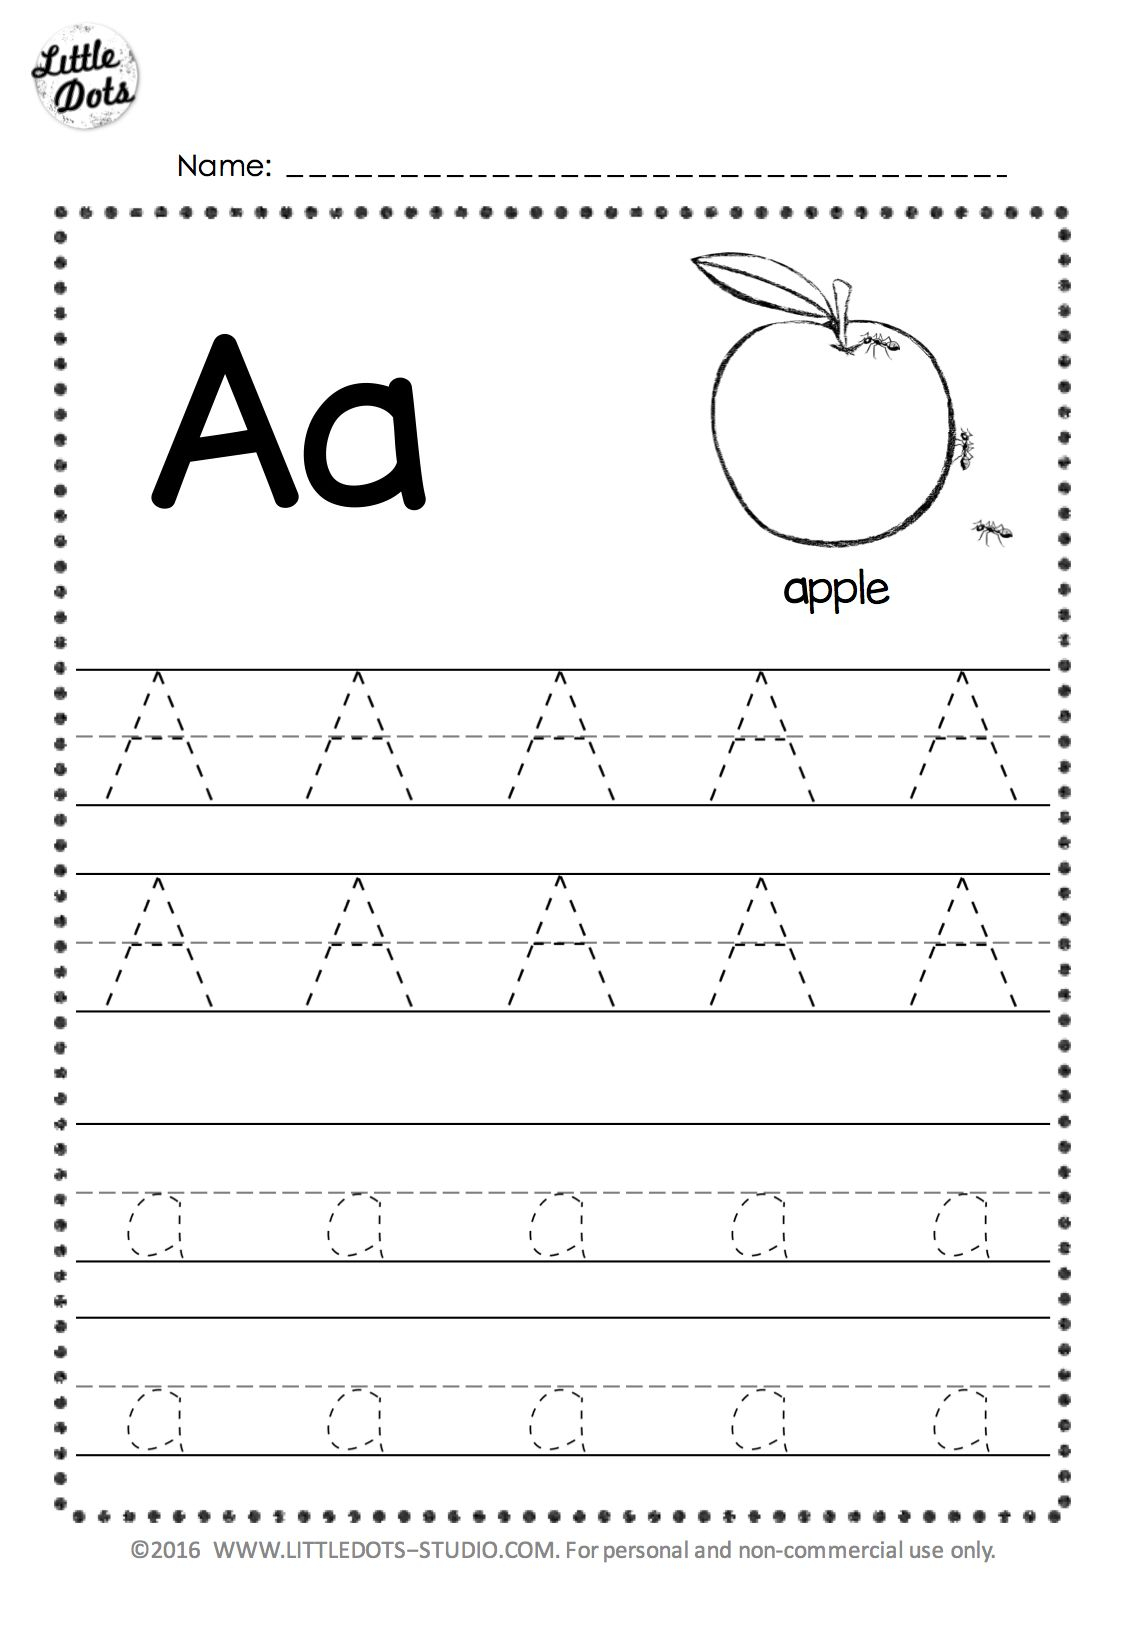 Free Letter A Tracing Worksheets | Alphabet Tracing throughout Alphabet Worksheets Free Download